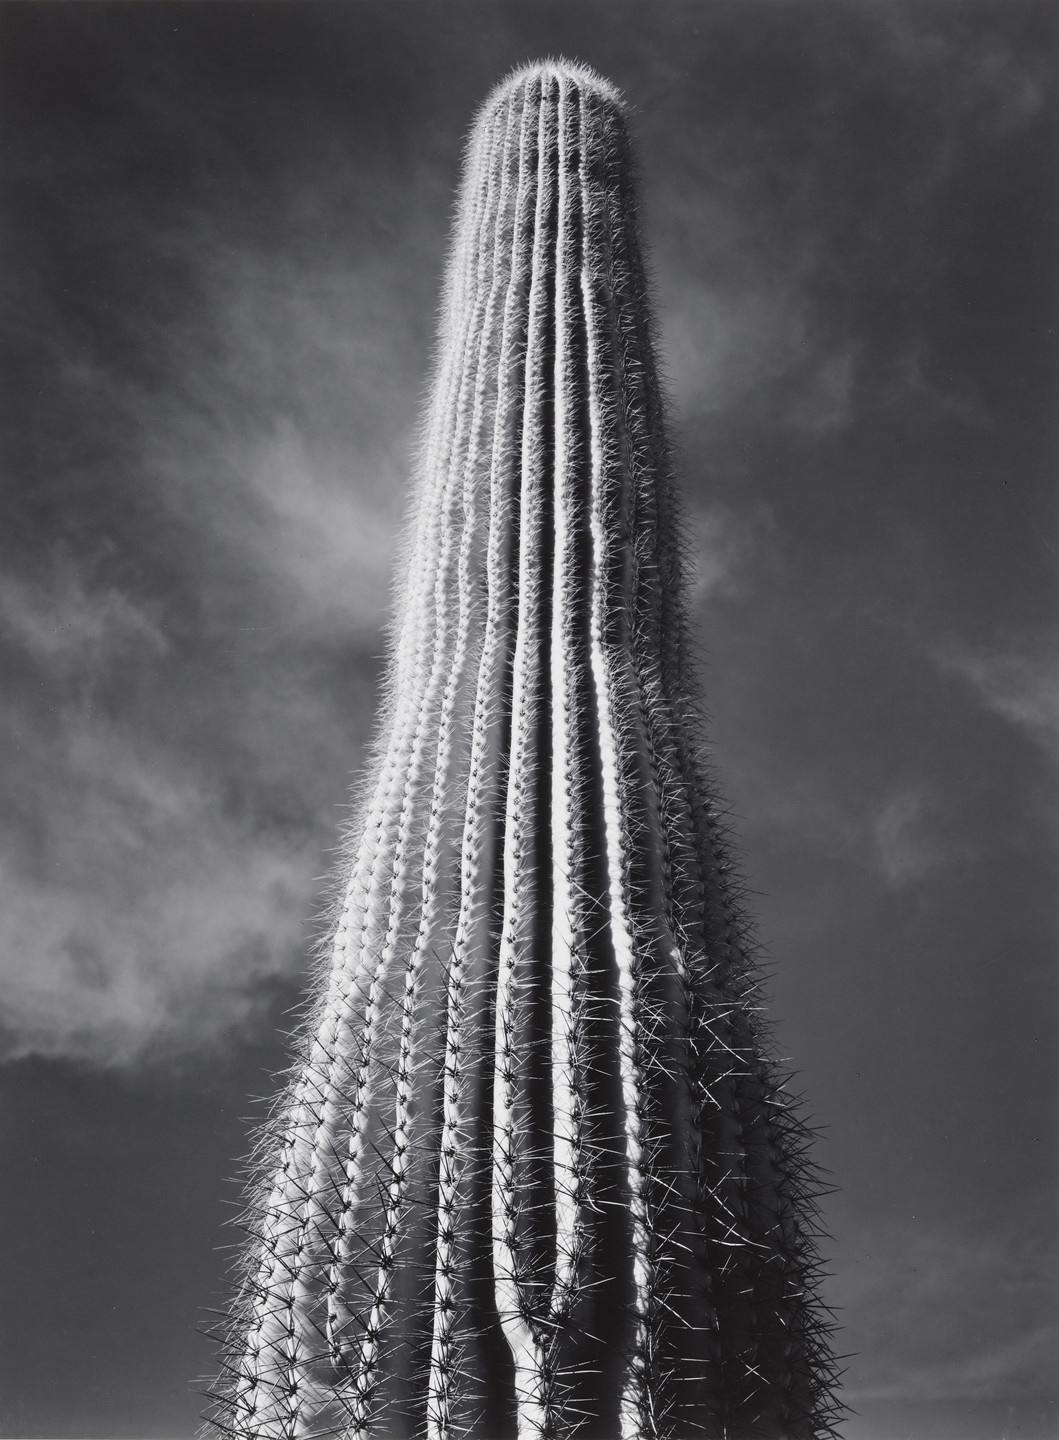 Ansel Adams. Saguaro Cactus, Sunrise, Arizona. 1946